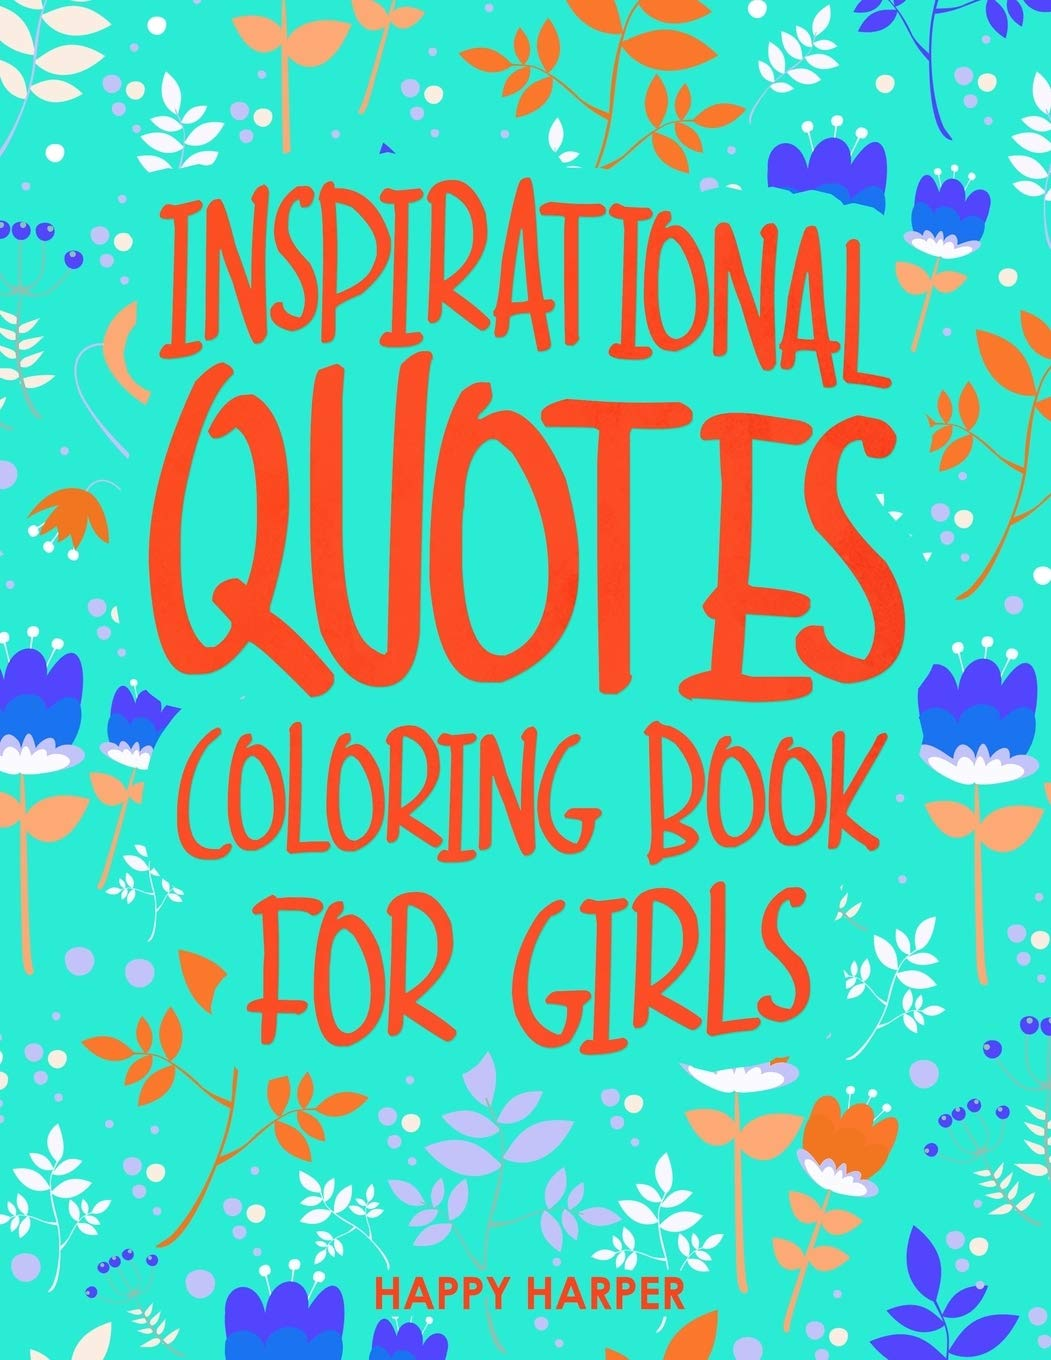 - Inspirational Quotes Coloring Book For Girls: A Kids Coloring Book